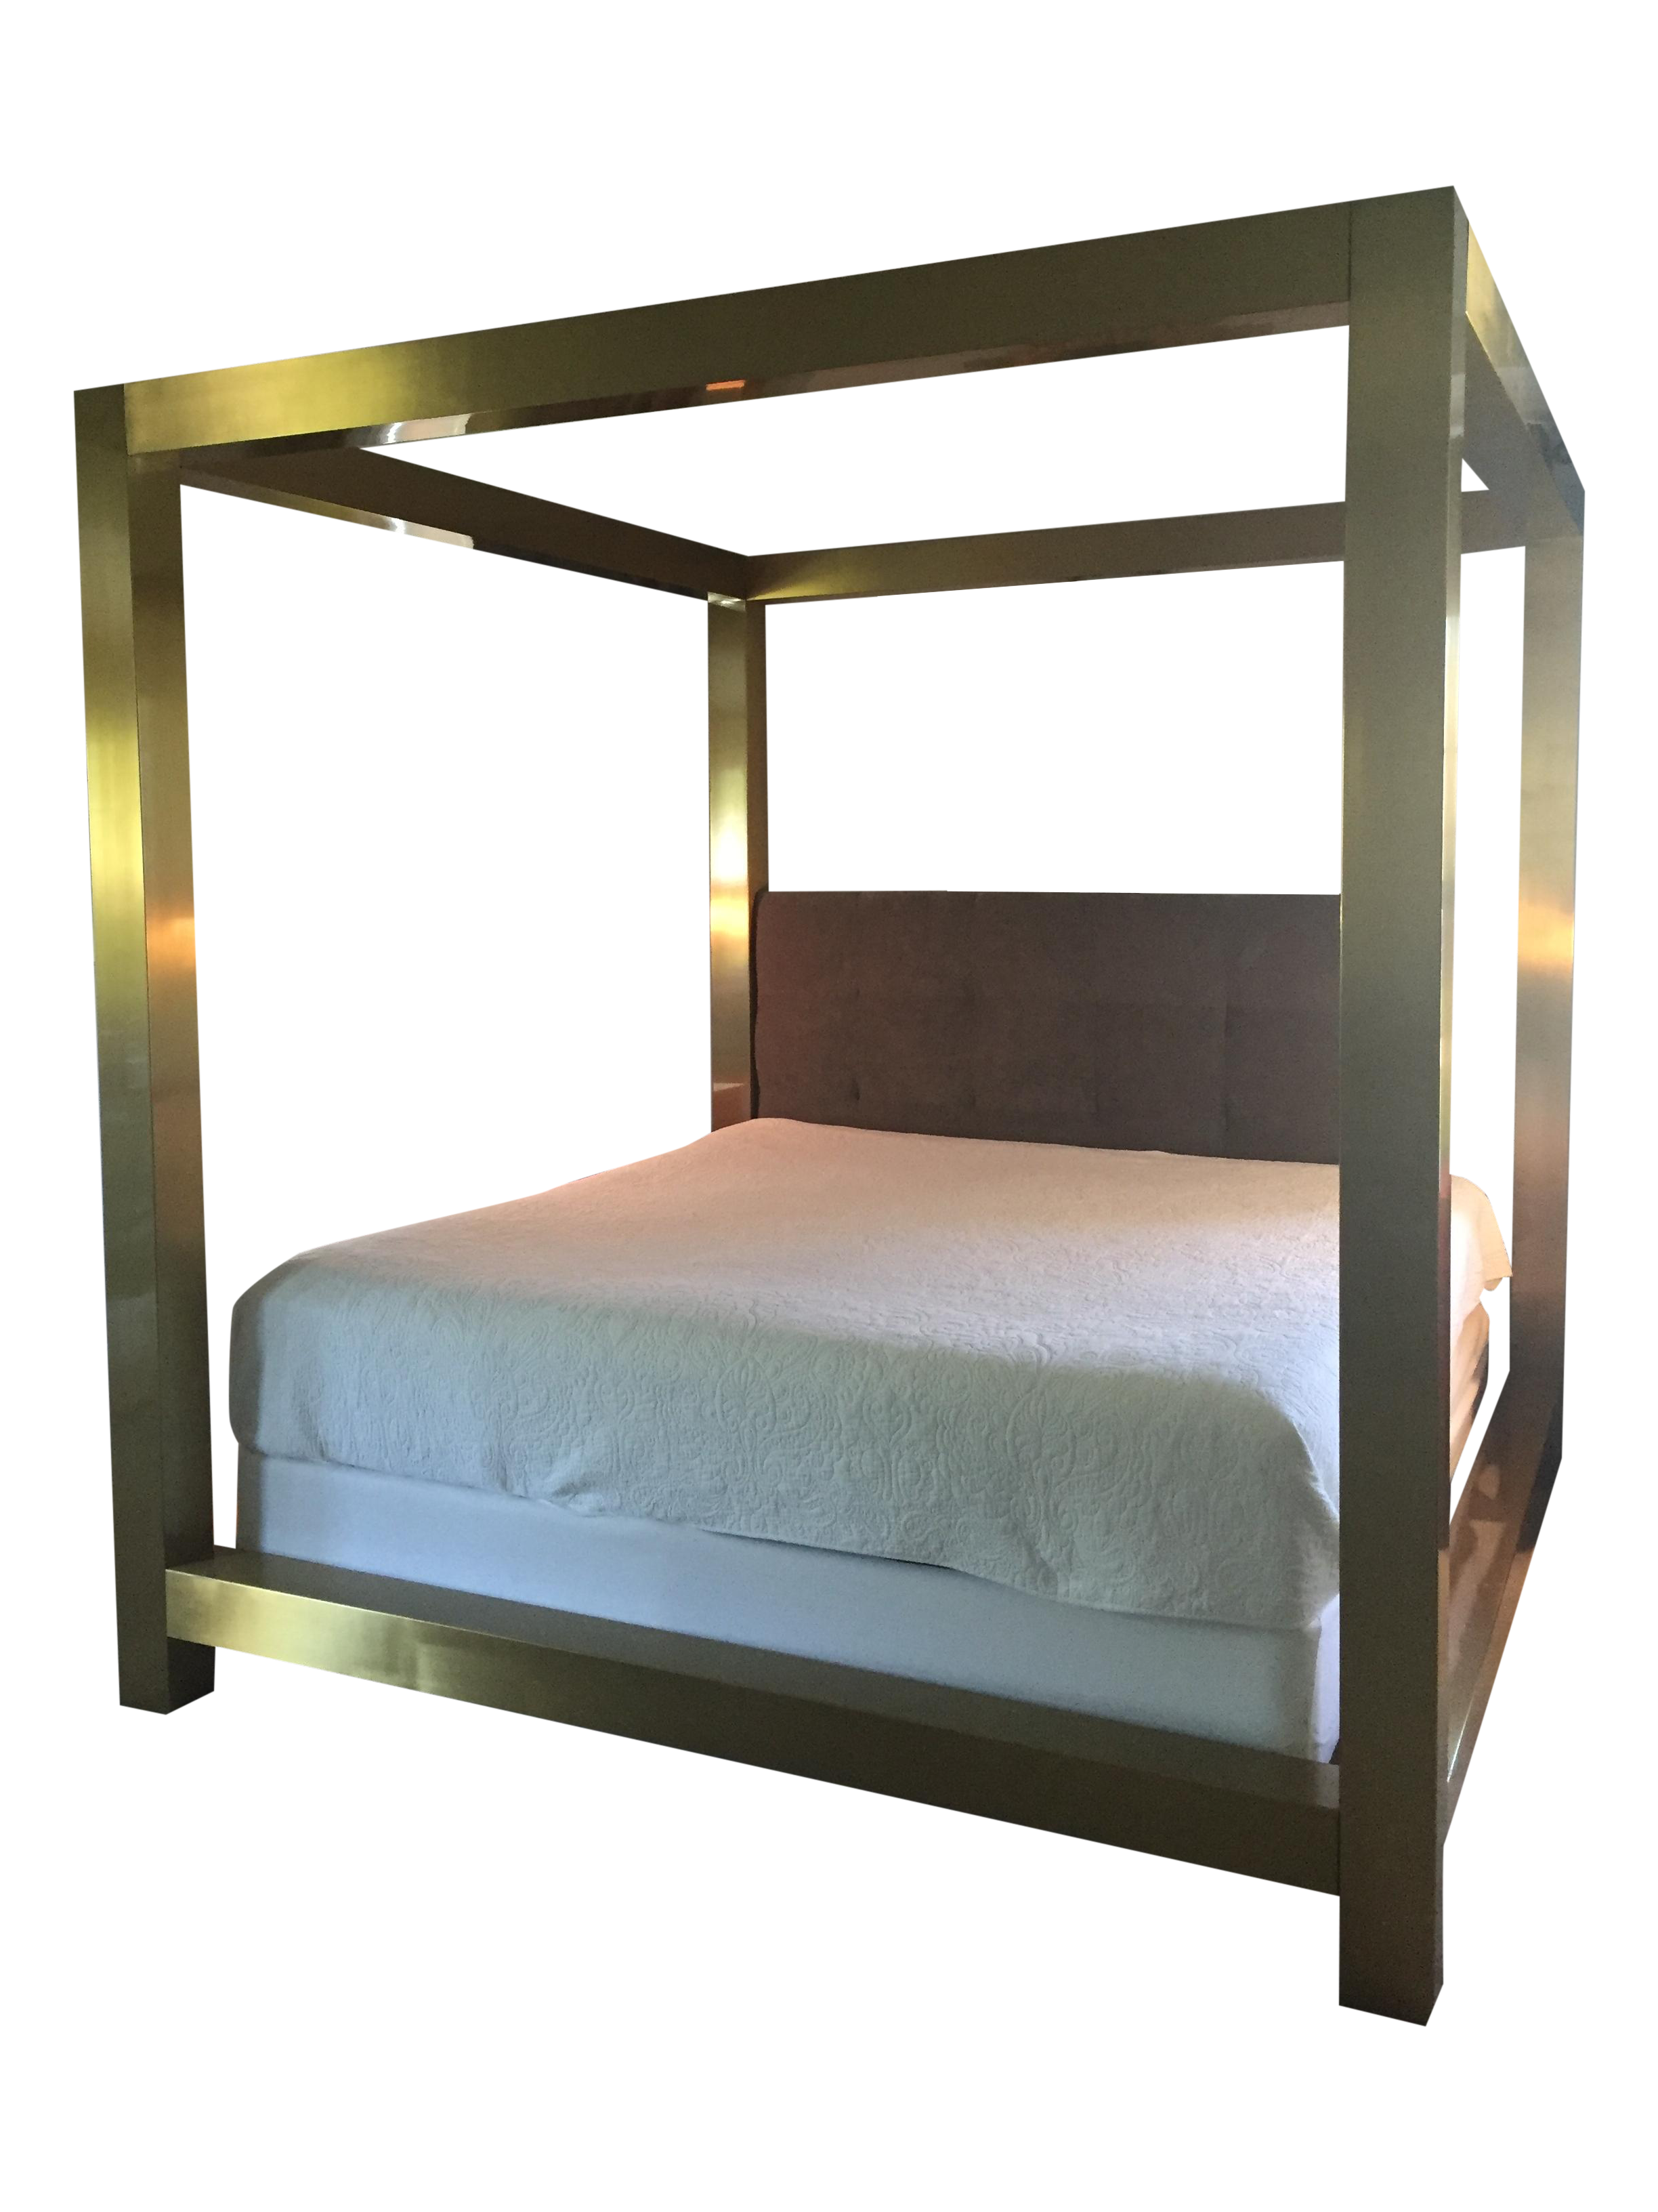 Used Canopy Bed bernhardt kensington metal canopy bed | chairish